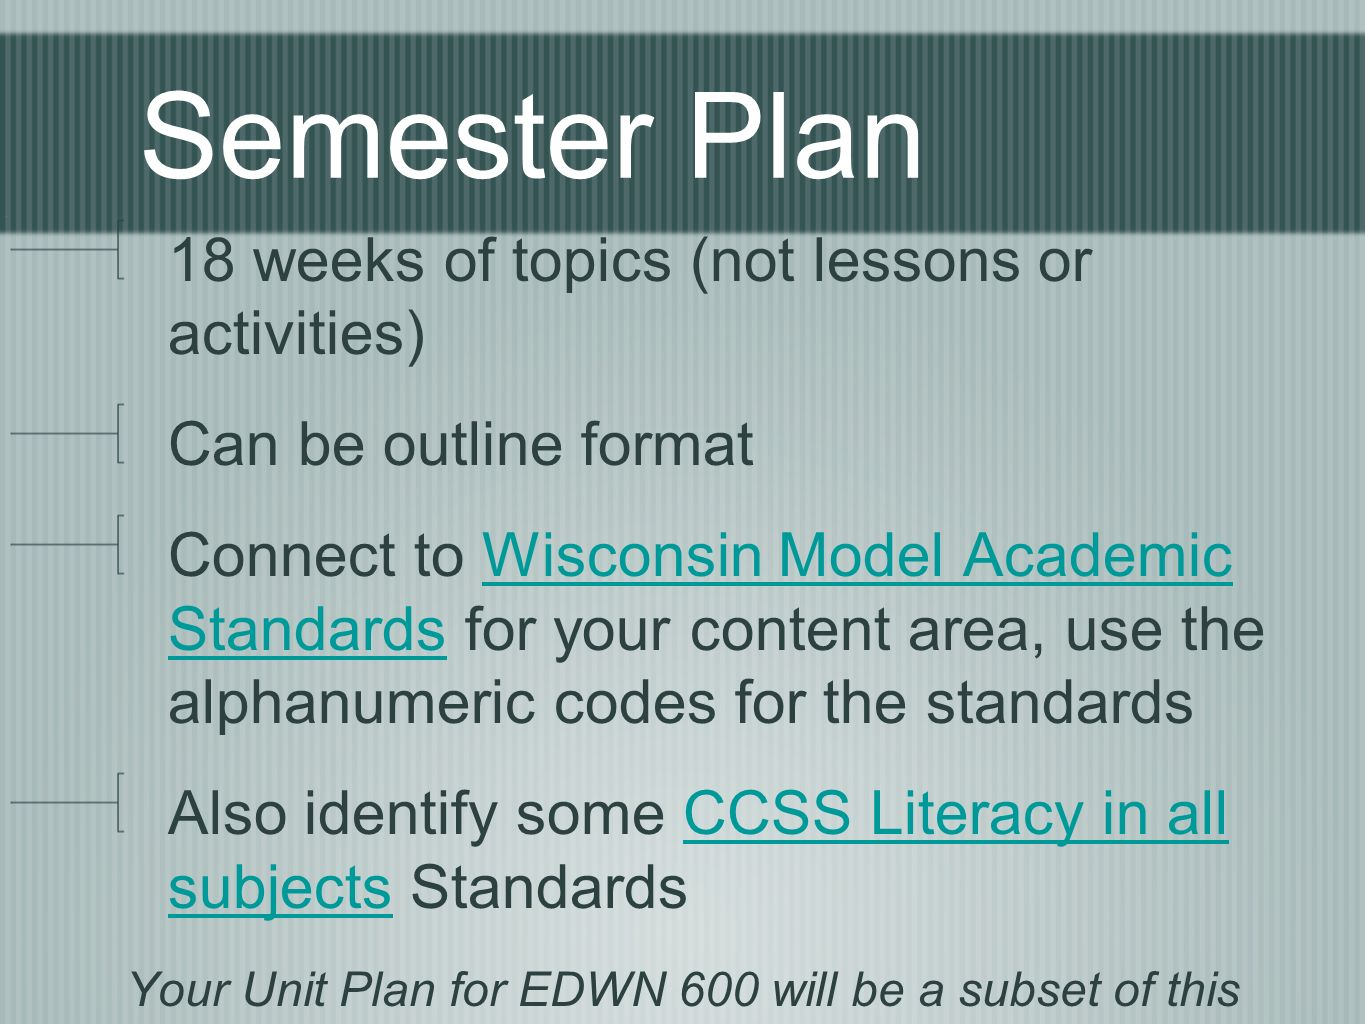 Semester Plan 18 weeks of topics (not lessons or activities) Can be outline format Connect to Wisconsin Model Academic Standards for your content area, use the alphanumeric codes for the standardsWisconsin Model Academic Standards Also identify some CCSS Literacy in all subjects StandardsCCSS Literacy in all subjects Your Unit Plan for EDWN 600 will be a subset of this